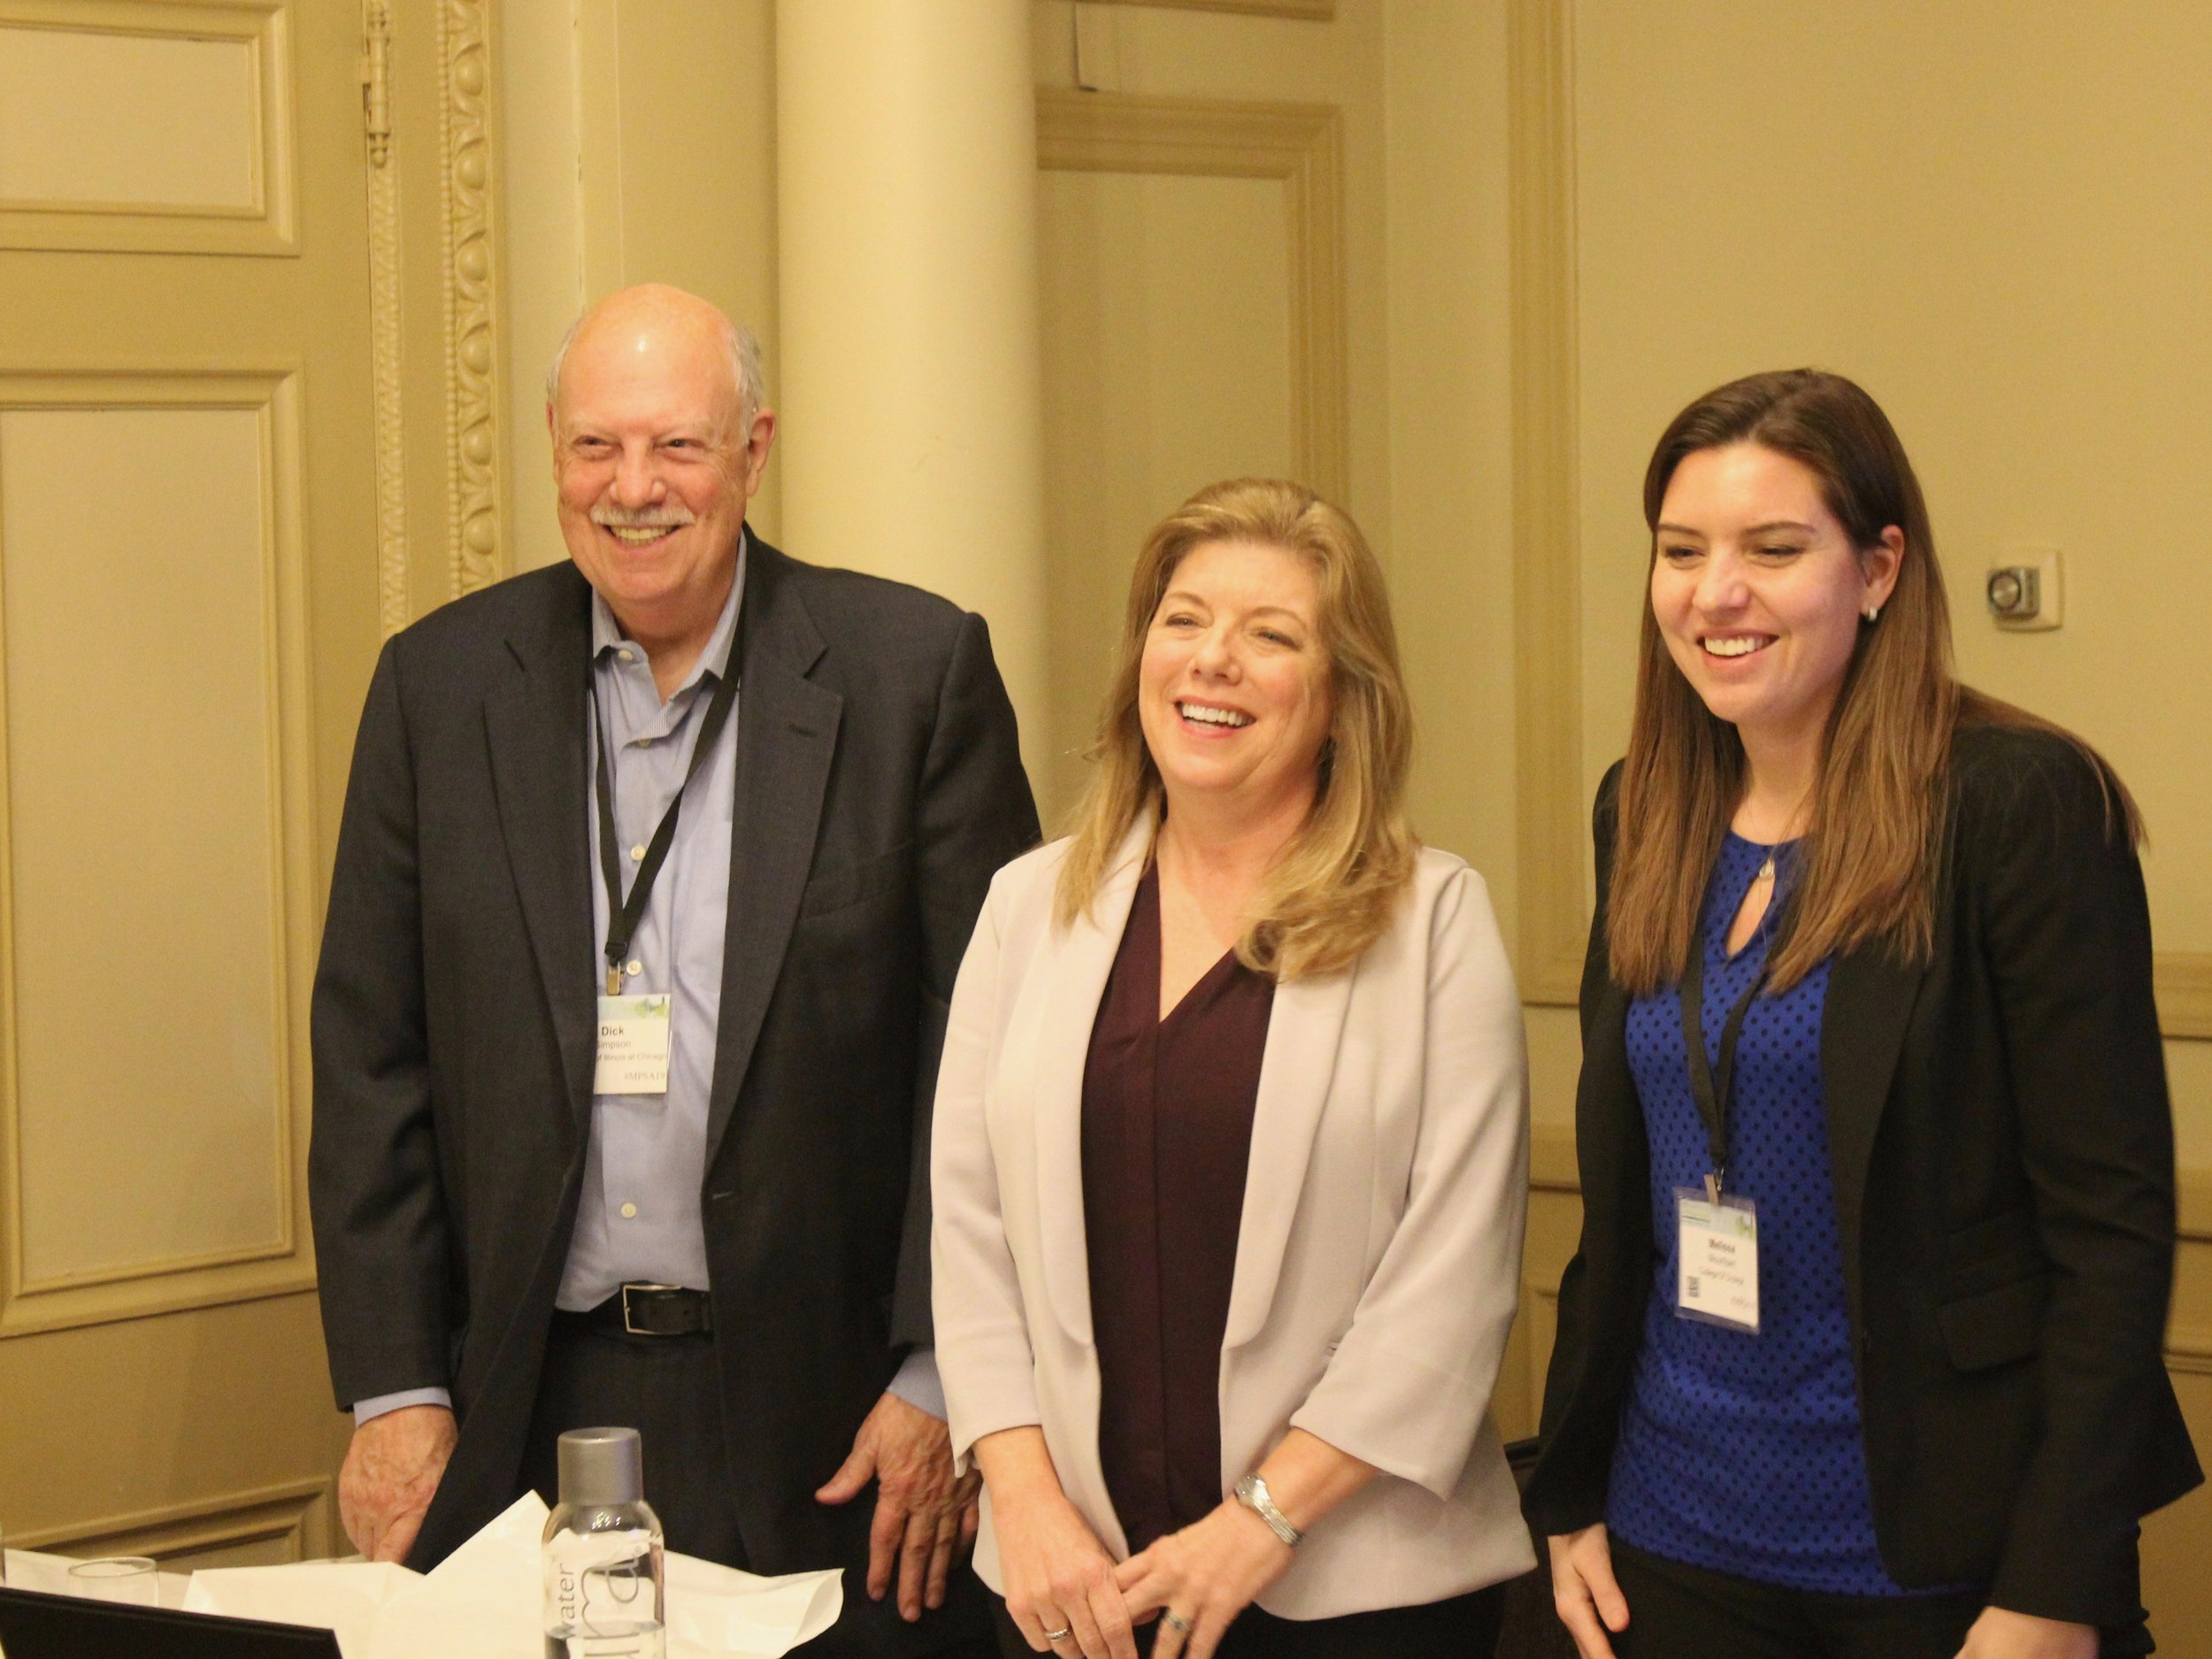 Professors Dick Simpson, Constance Mixon, and Melissa Mouritsen performed a post mortem on Tuesday's election as part of the Midwest Political Science Association Conference at Chicago's Palmer House. (One Illinois/Ted Cox)